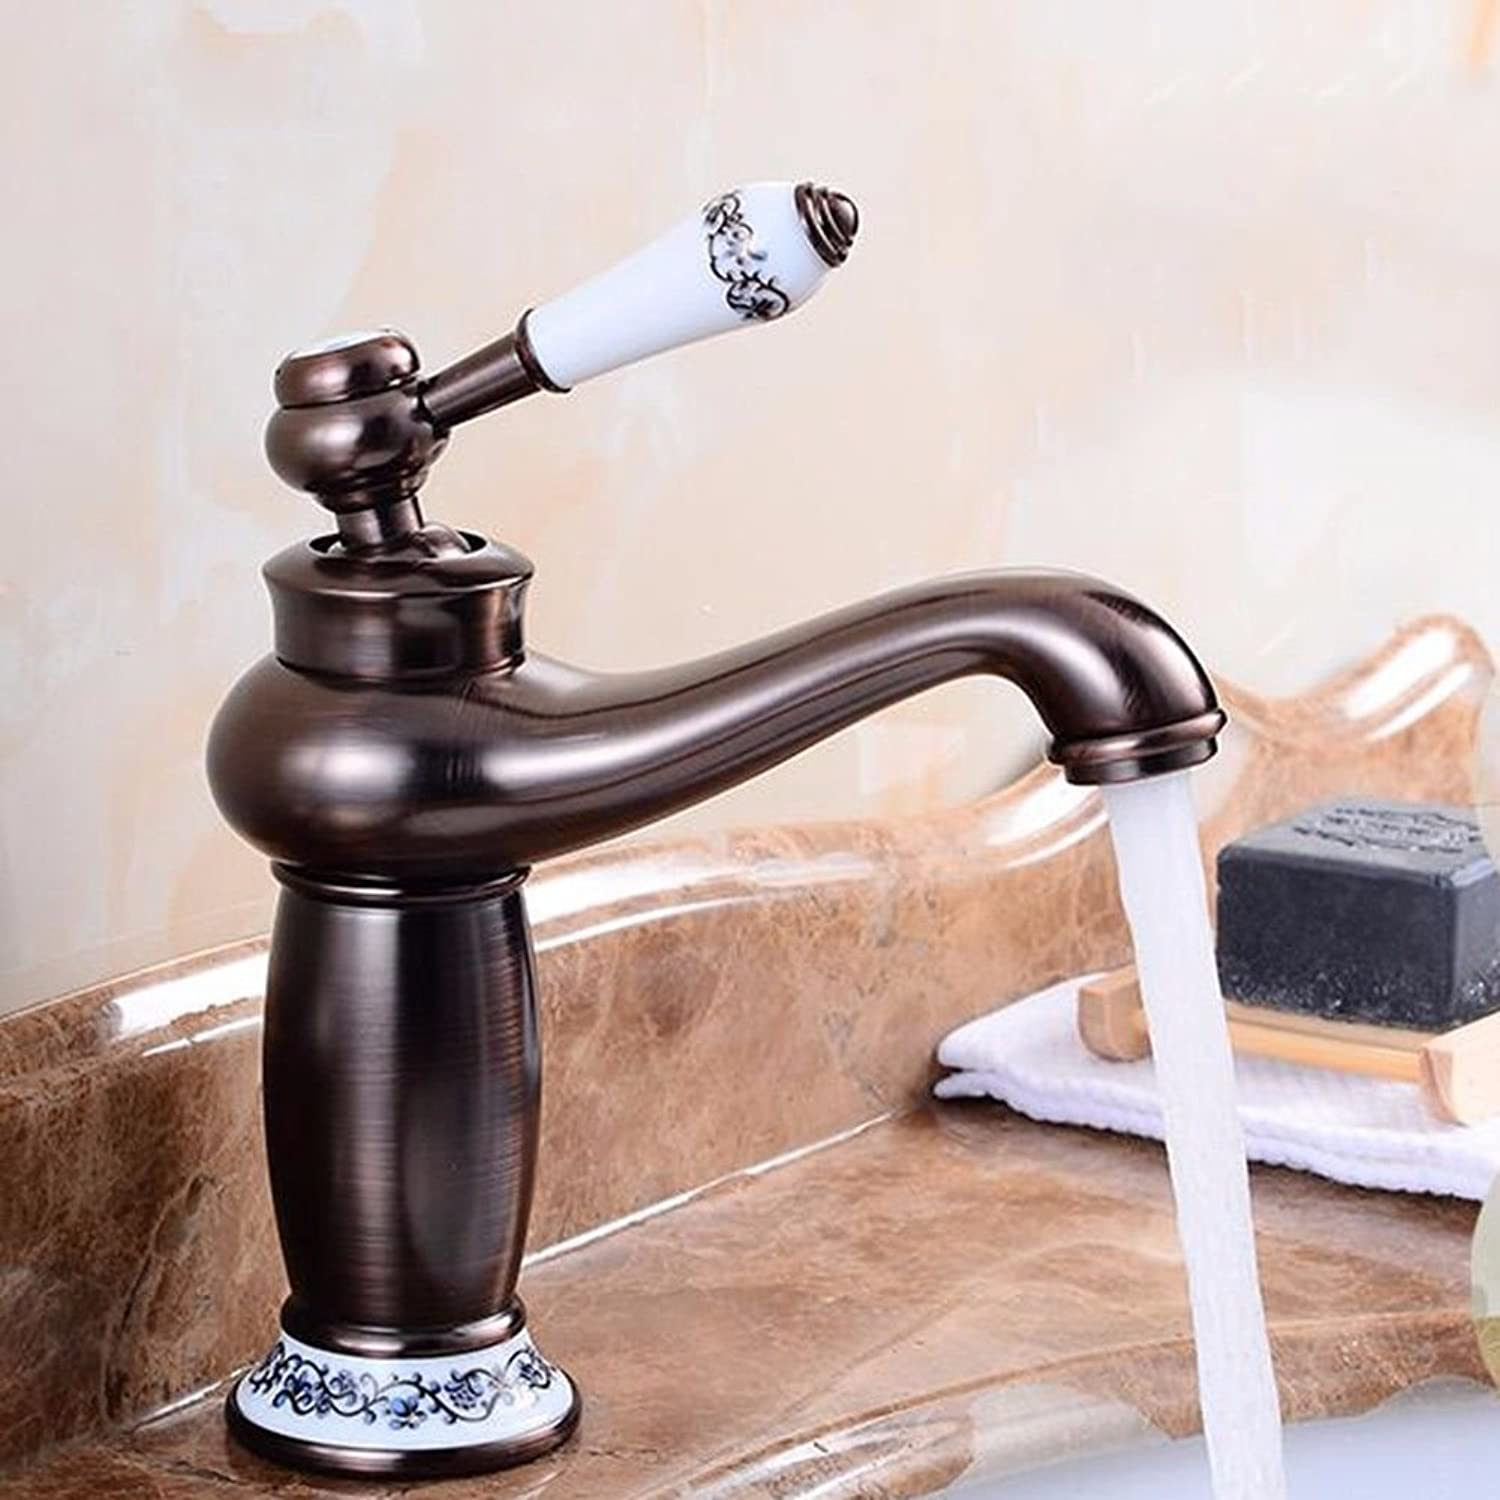 Hlluya Professional Sink Mixer Tap Kitchen Faucet Black antique taps plus high-copper hot and cold basin mixer antique table basin taps, Black